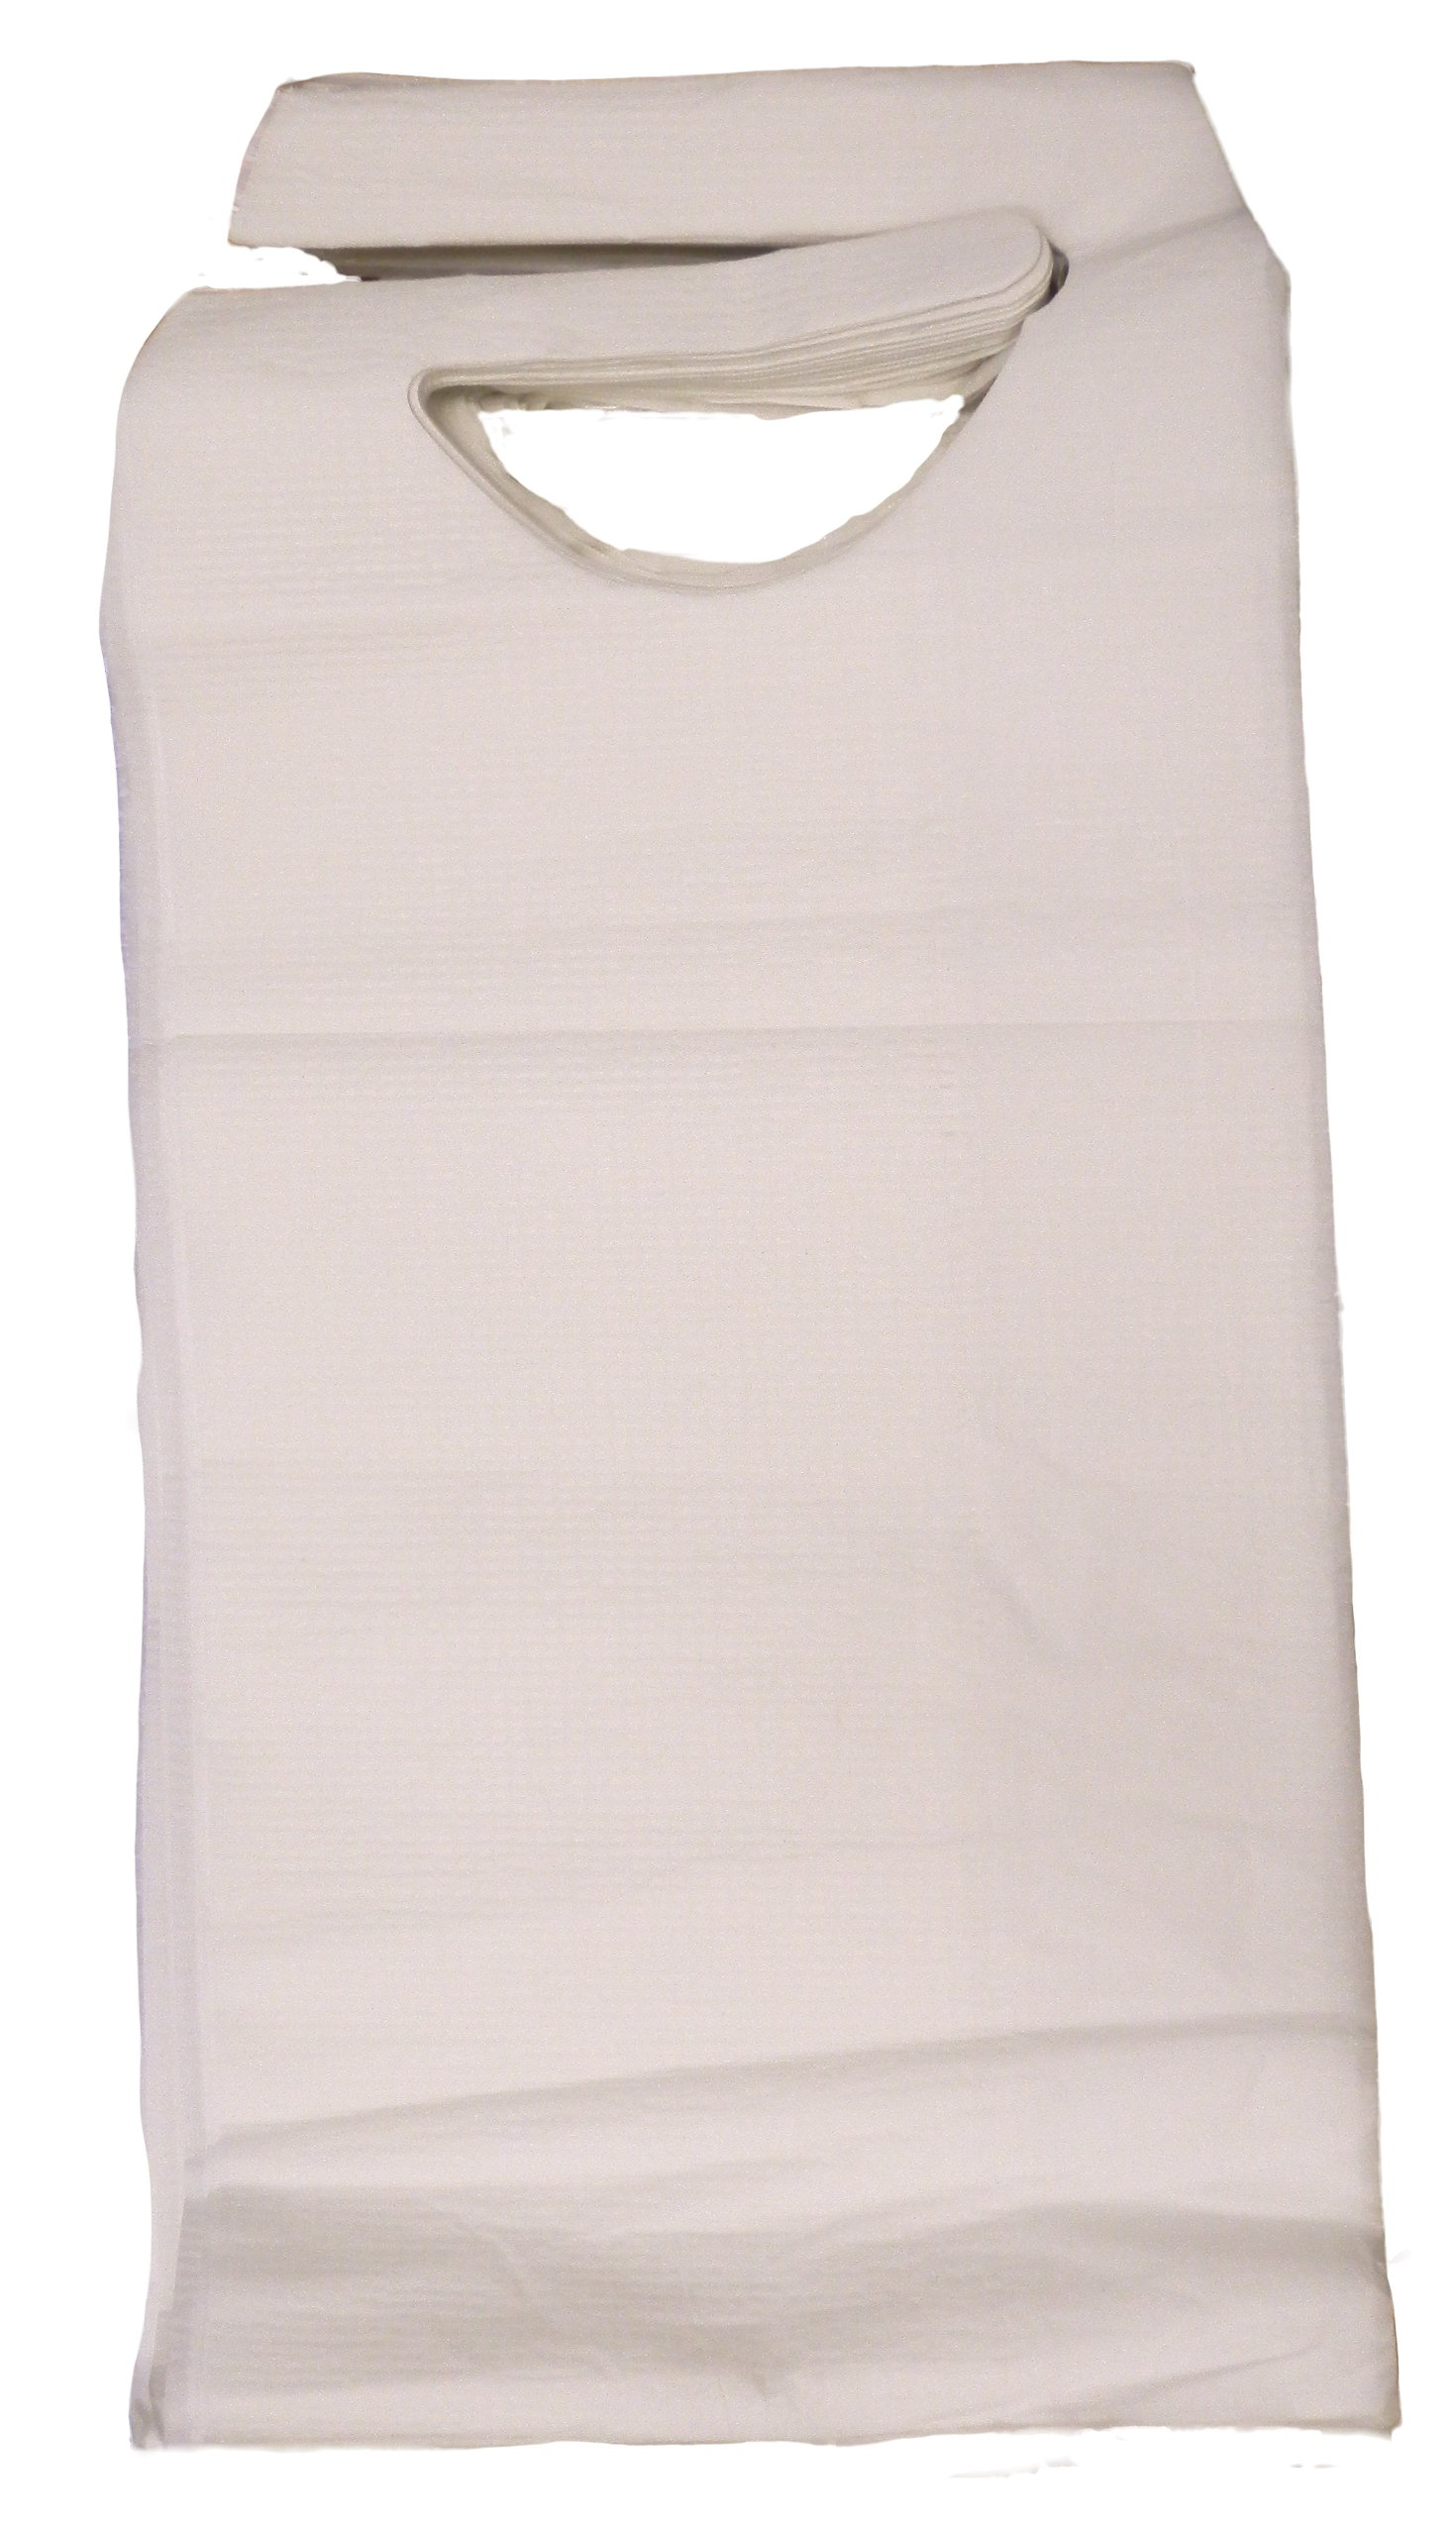 SNL Quality Disposable Adult Poly-Lined Bibs - 16'' X 33'' - Tie-Back (Pack of 150)